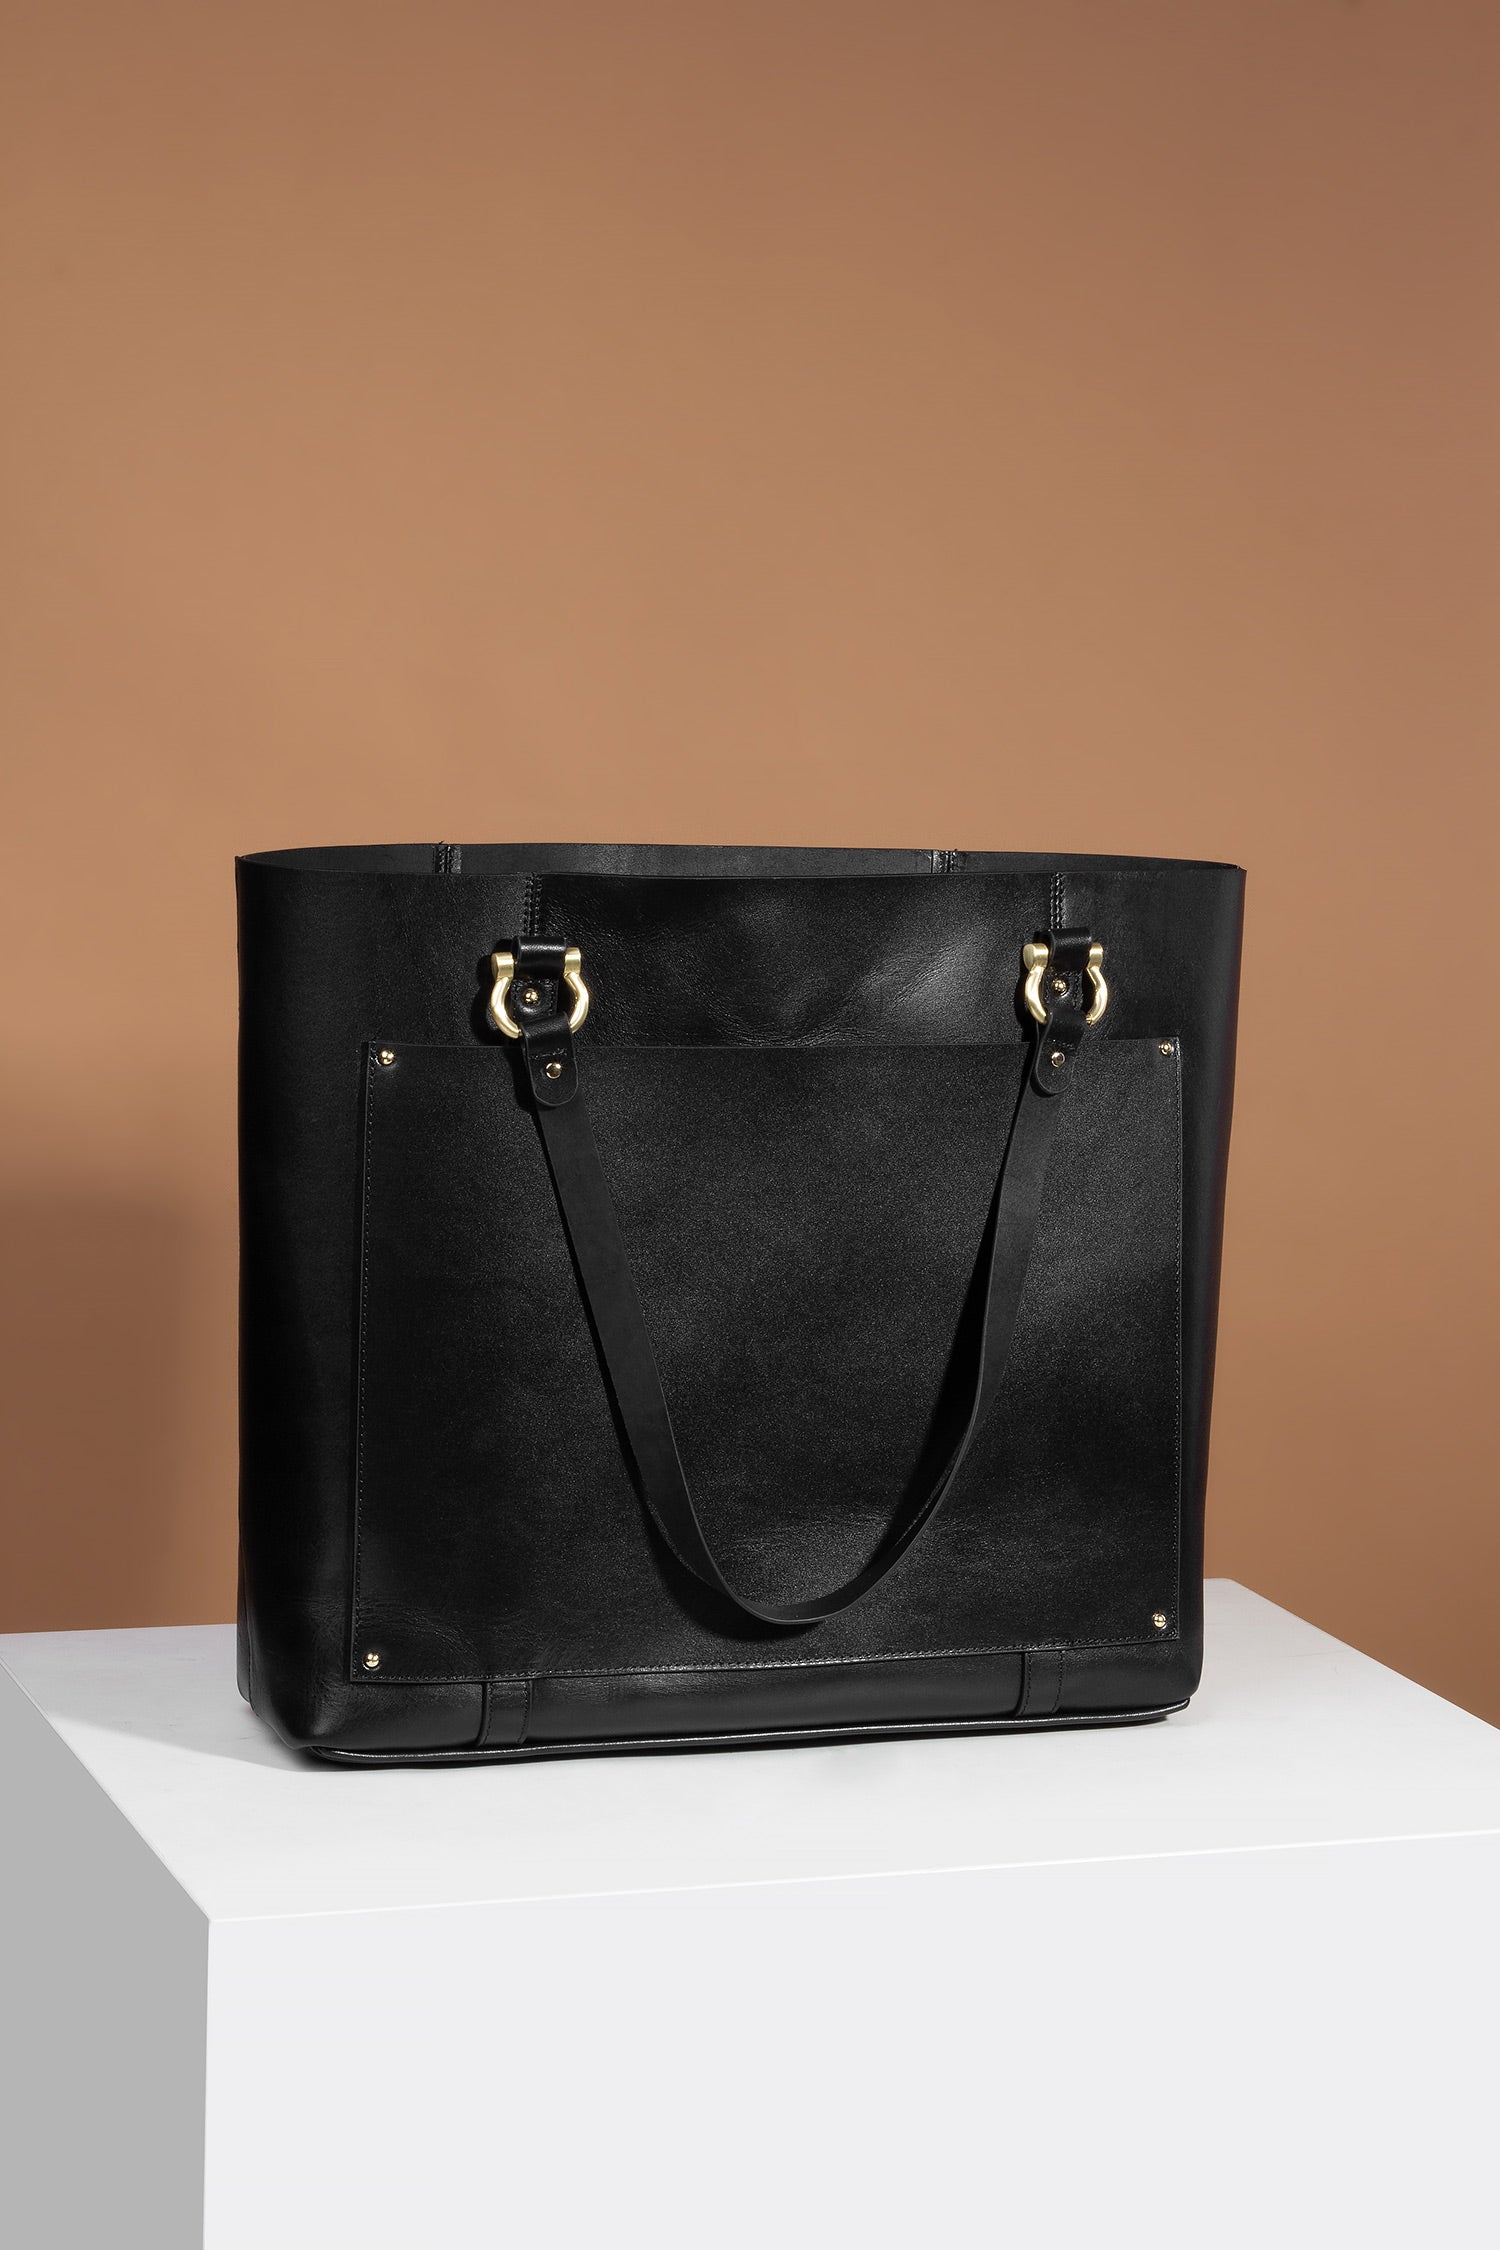 THE MARILOU TOTE